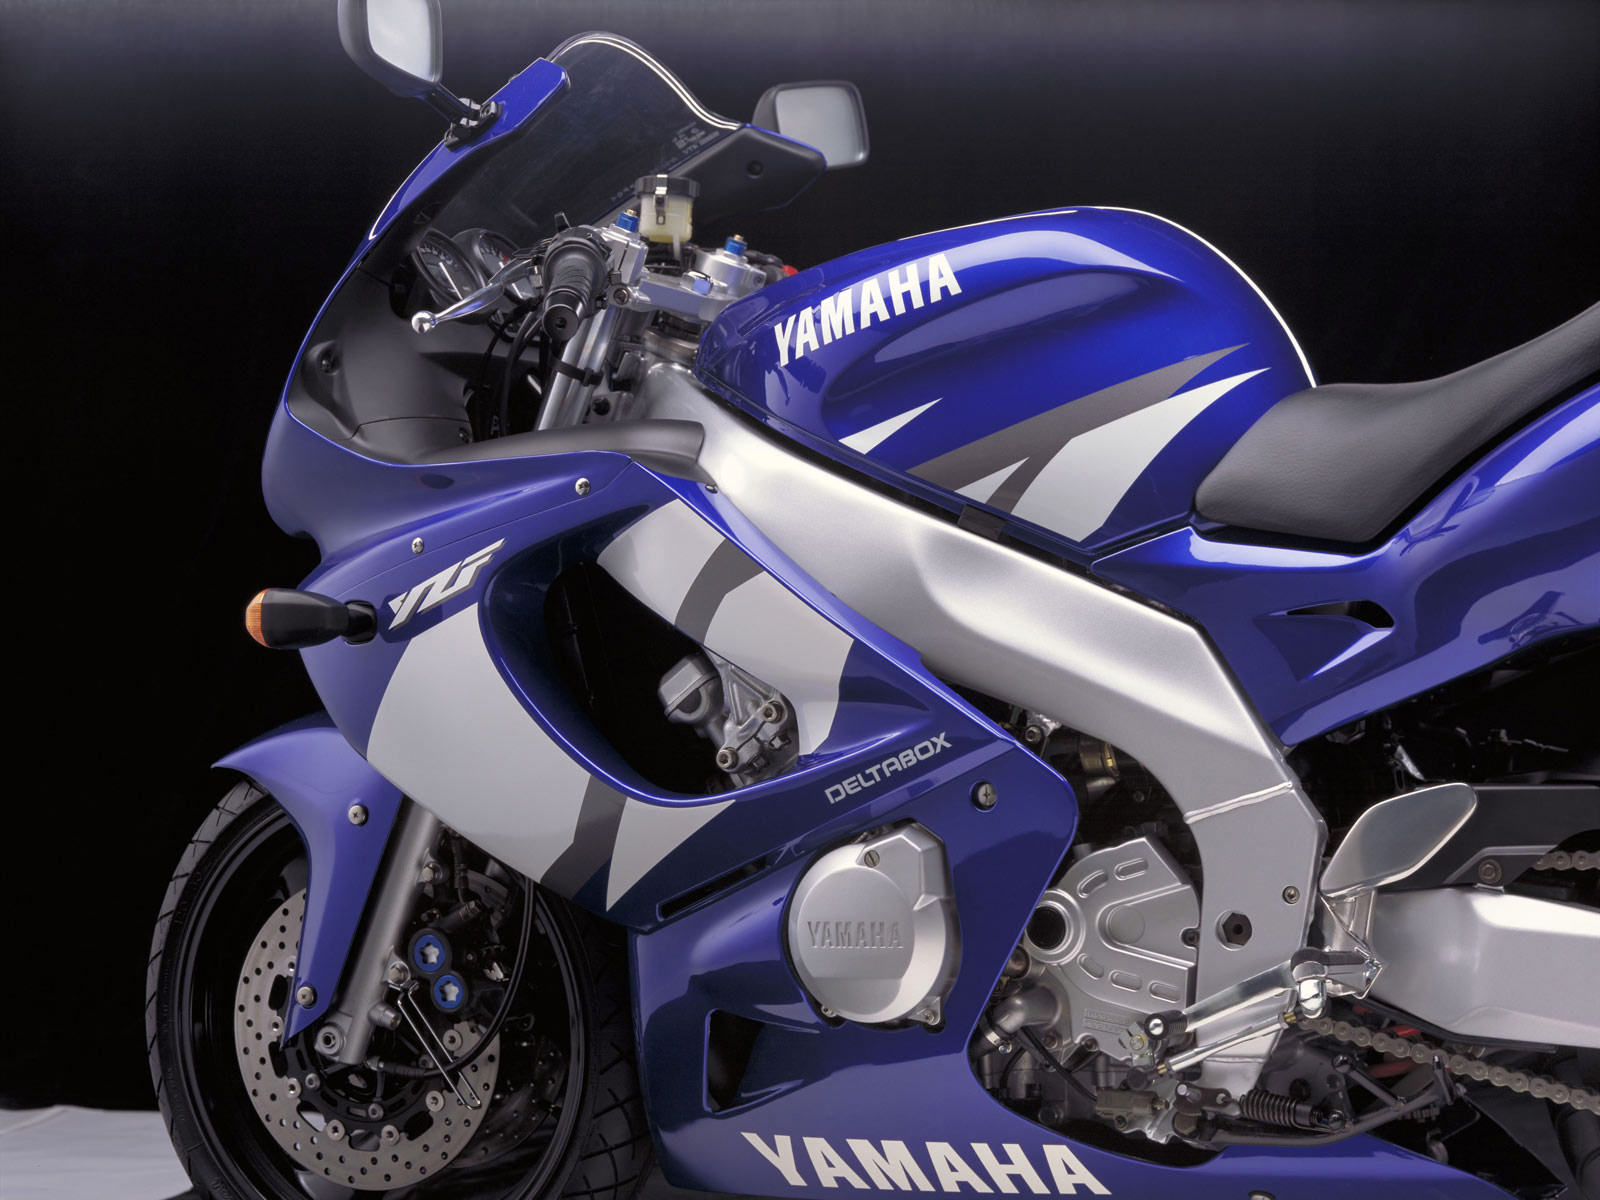 2002 YAMAHA YZH 600 R Thundercat pictures